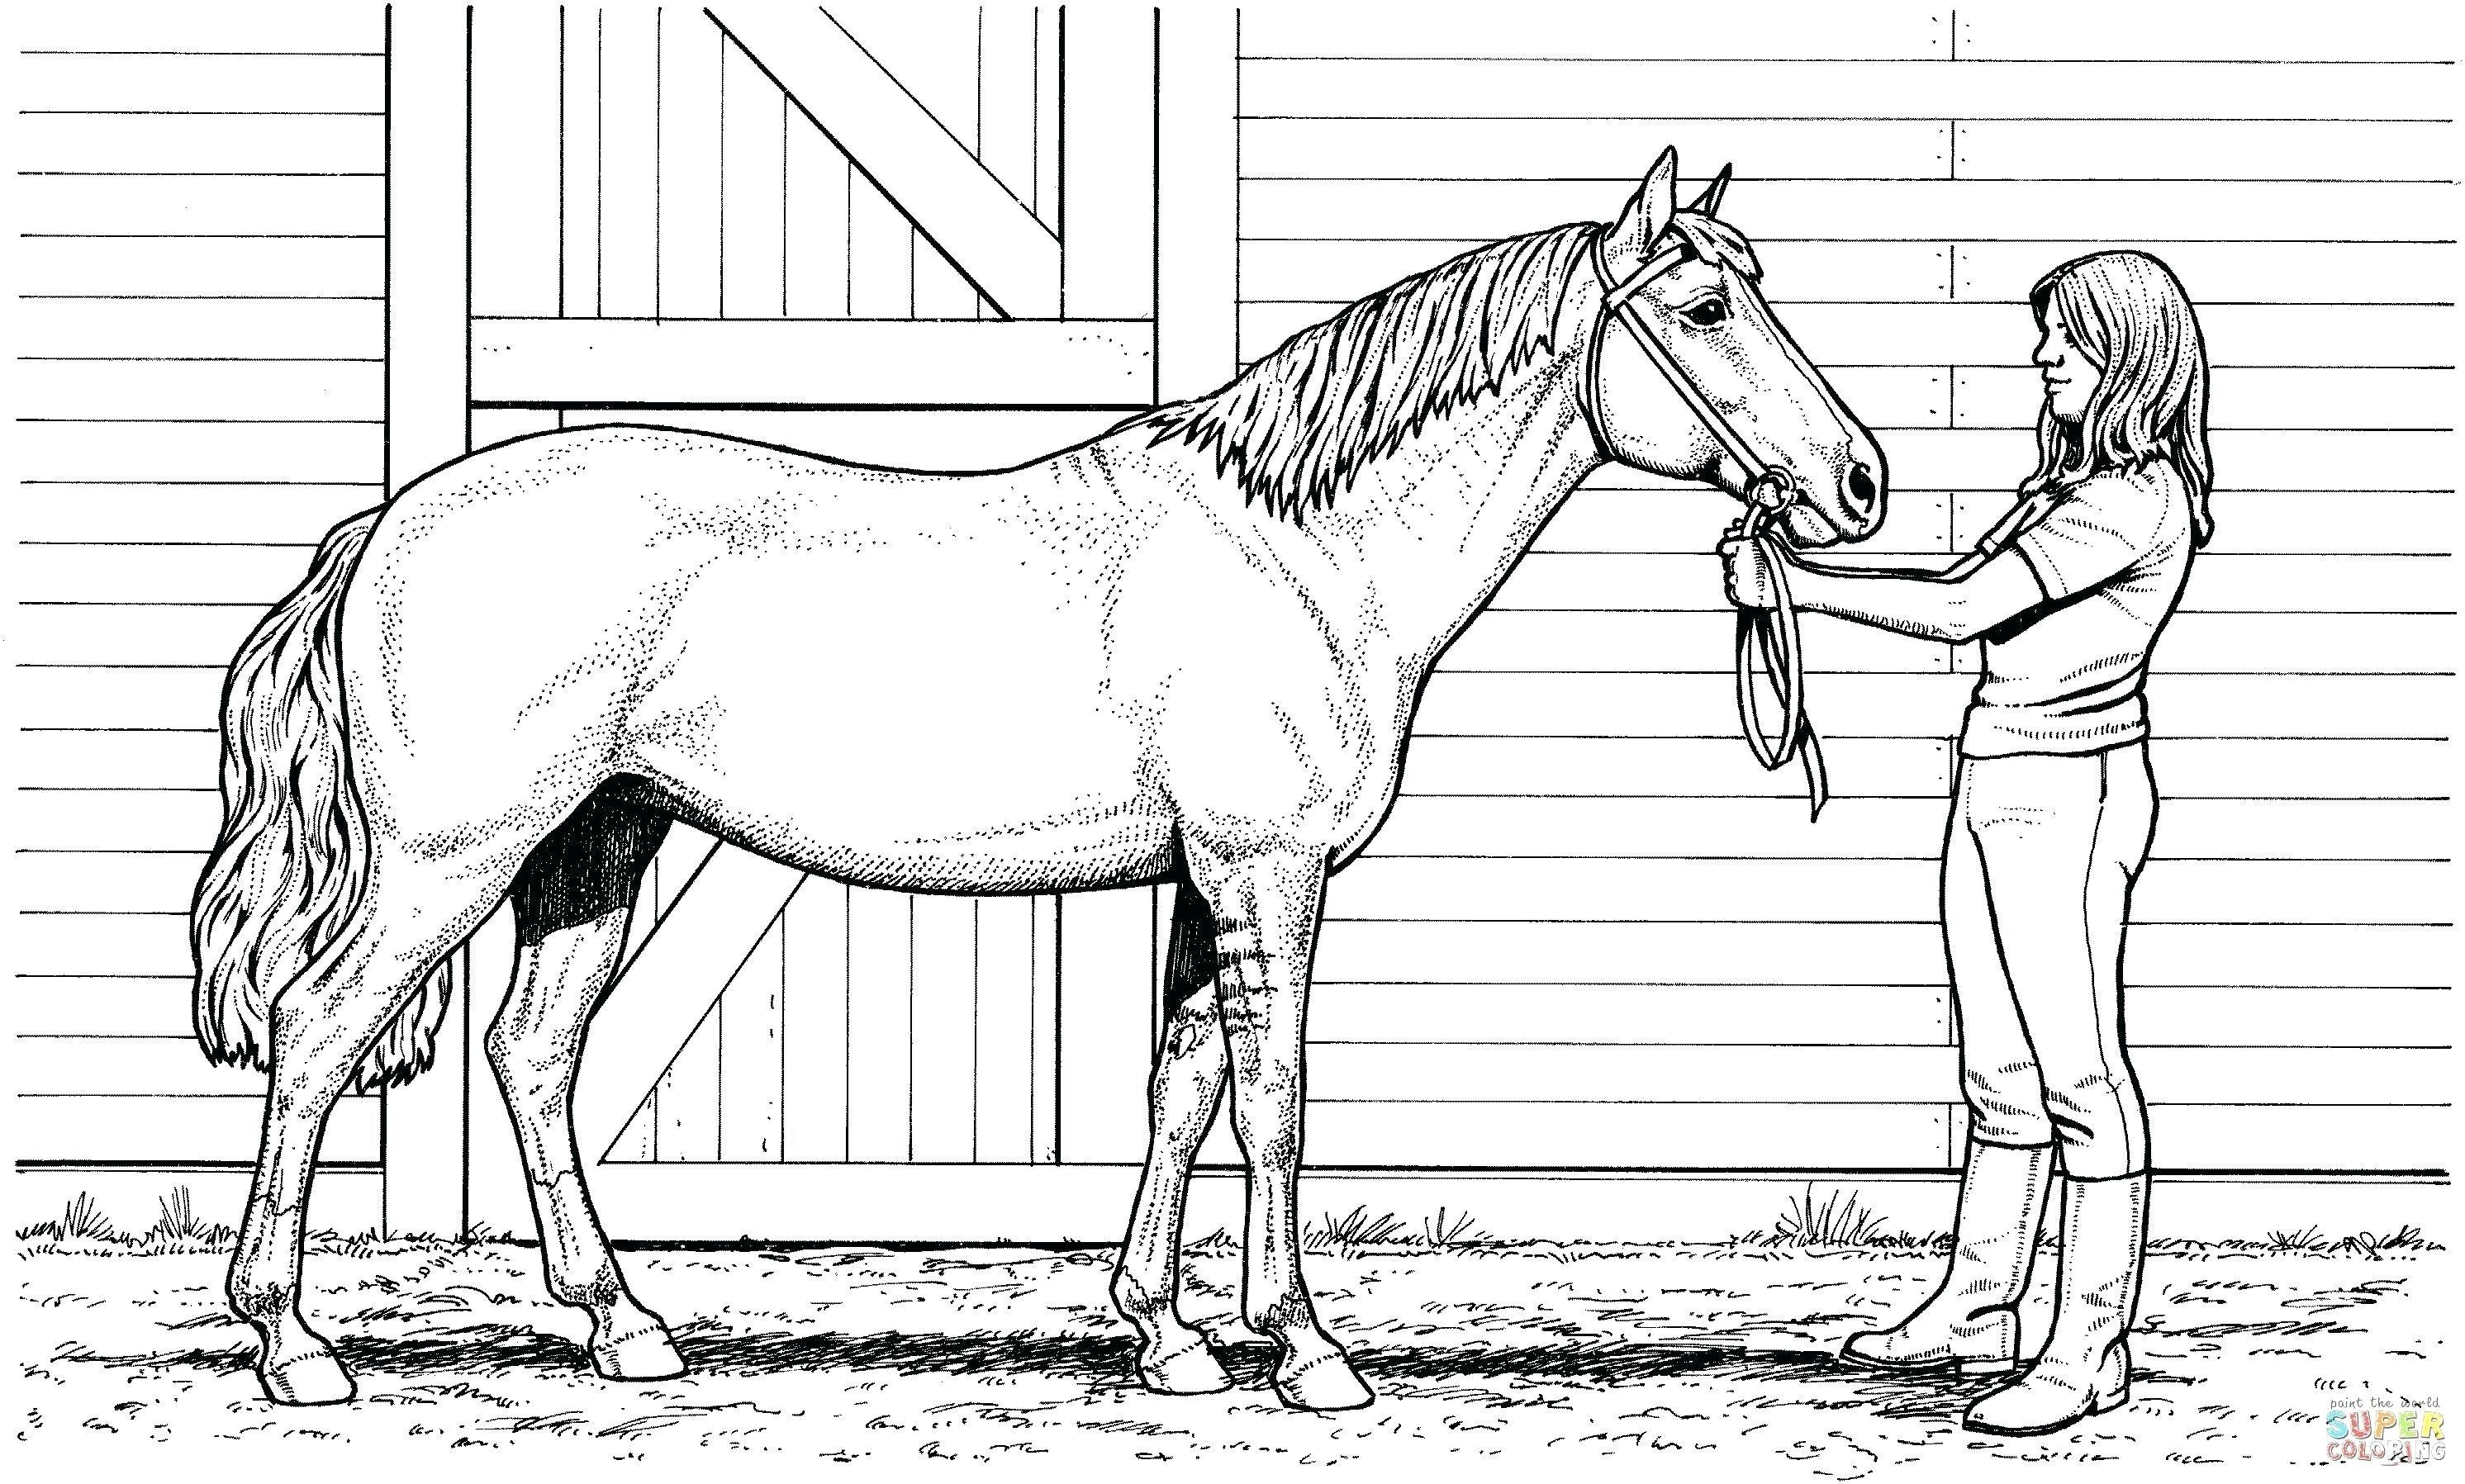 Printable Horse Coloring Pages New Race Horse Coloring Pages Printable Micronsheet In 2020 Horse Coloring Pages Horse Coloring Animal Coloring Pages